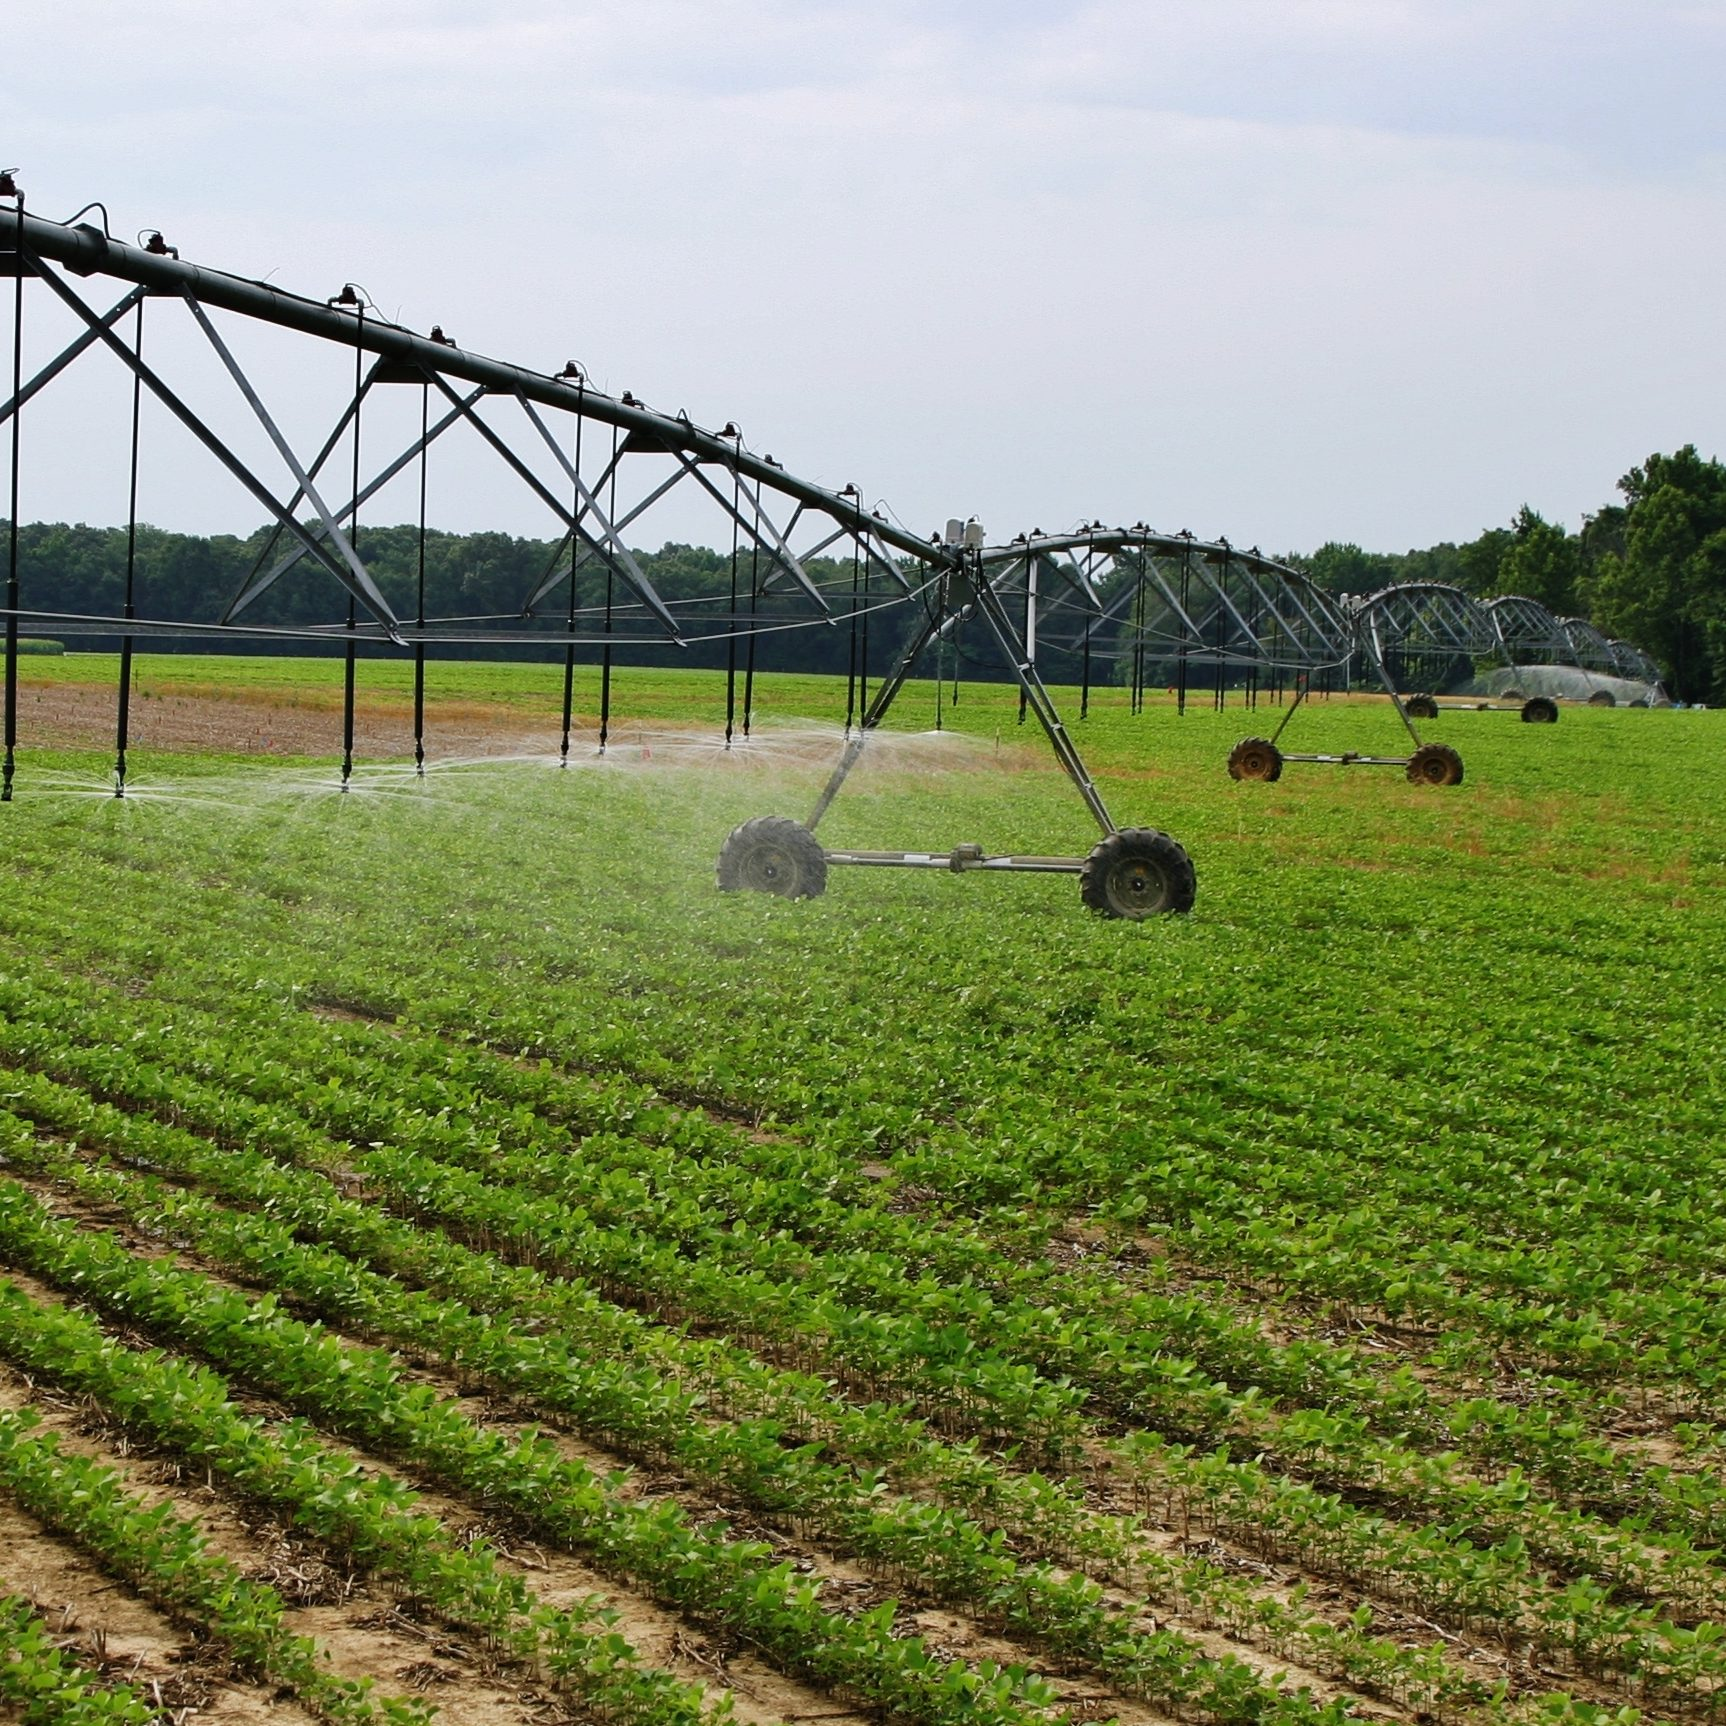 Irrigation equipment being used to spray crop